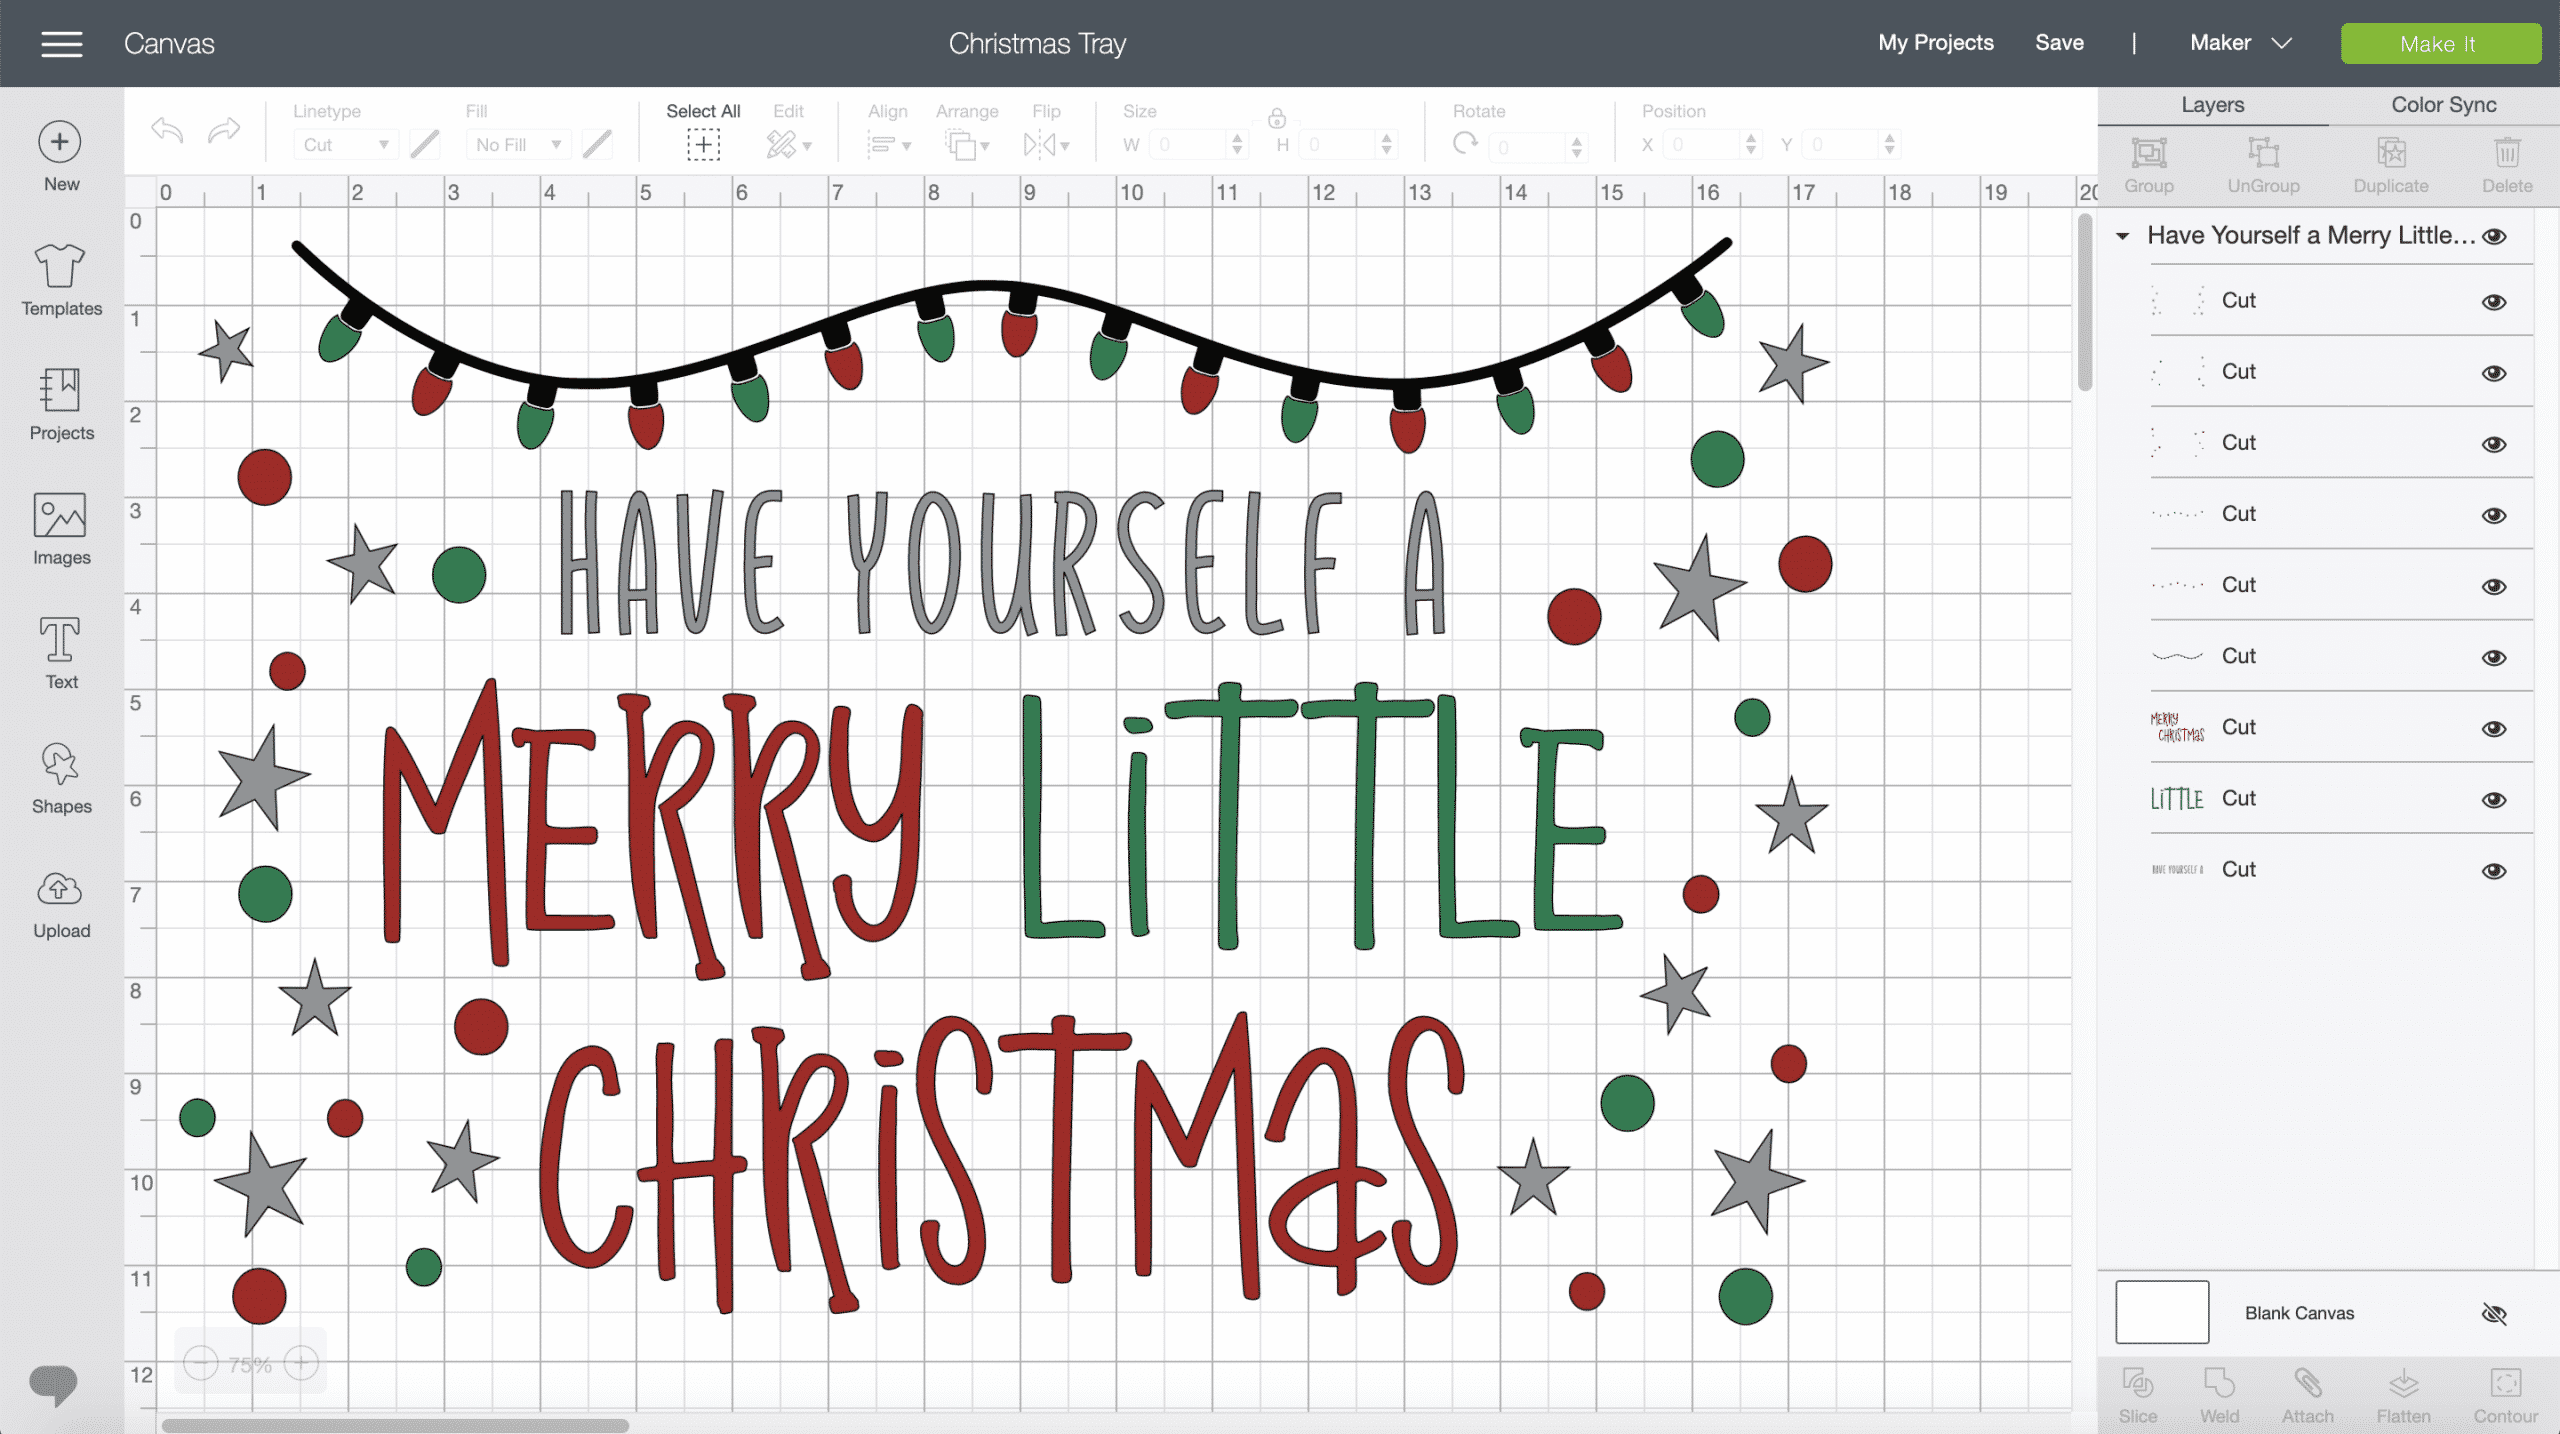 Merry Little Christmas Tray Cricut Design Space screenshot